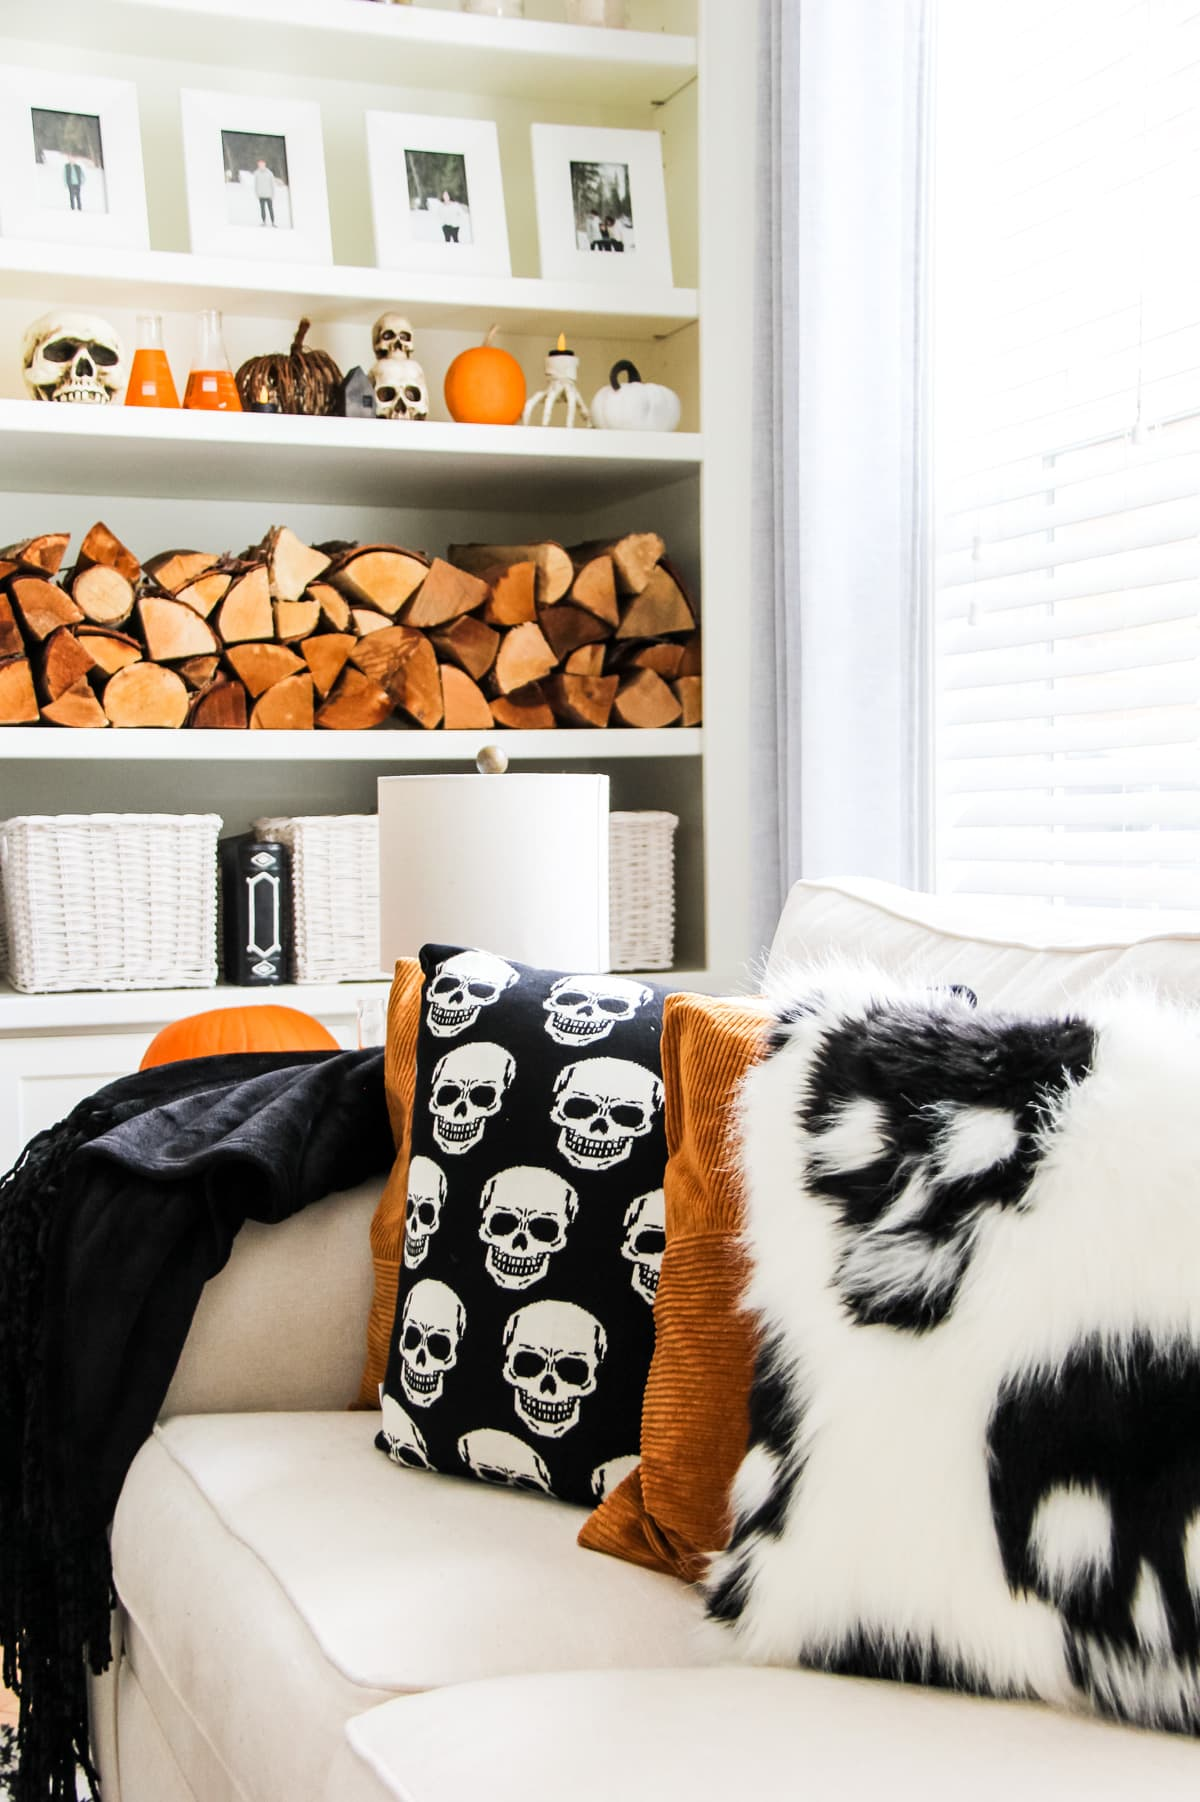 a cream coloured couch with black and white skull pillows and burnt orange pillows. in the background is a white shelf filled with chopped wood, orange pumpkins and skulls